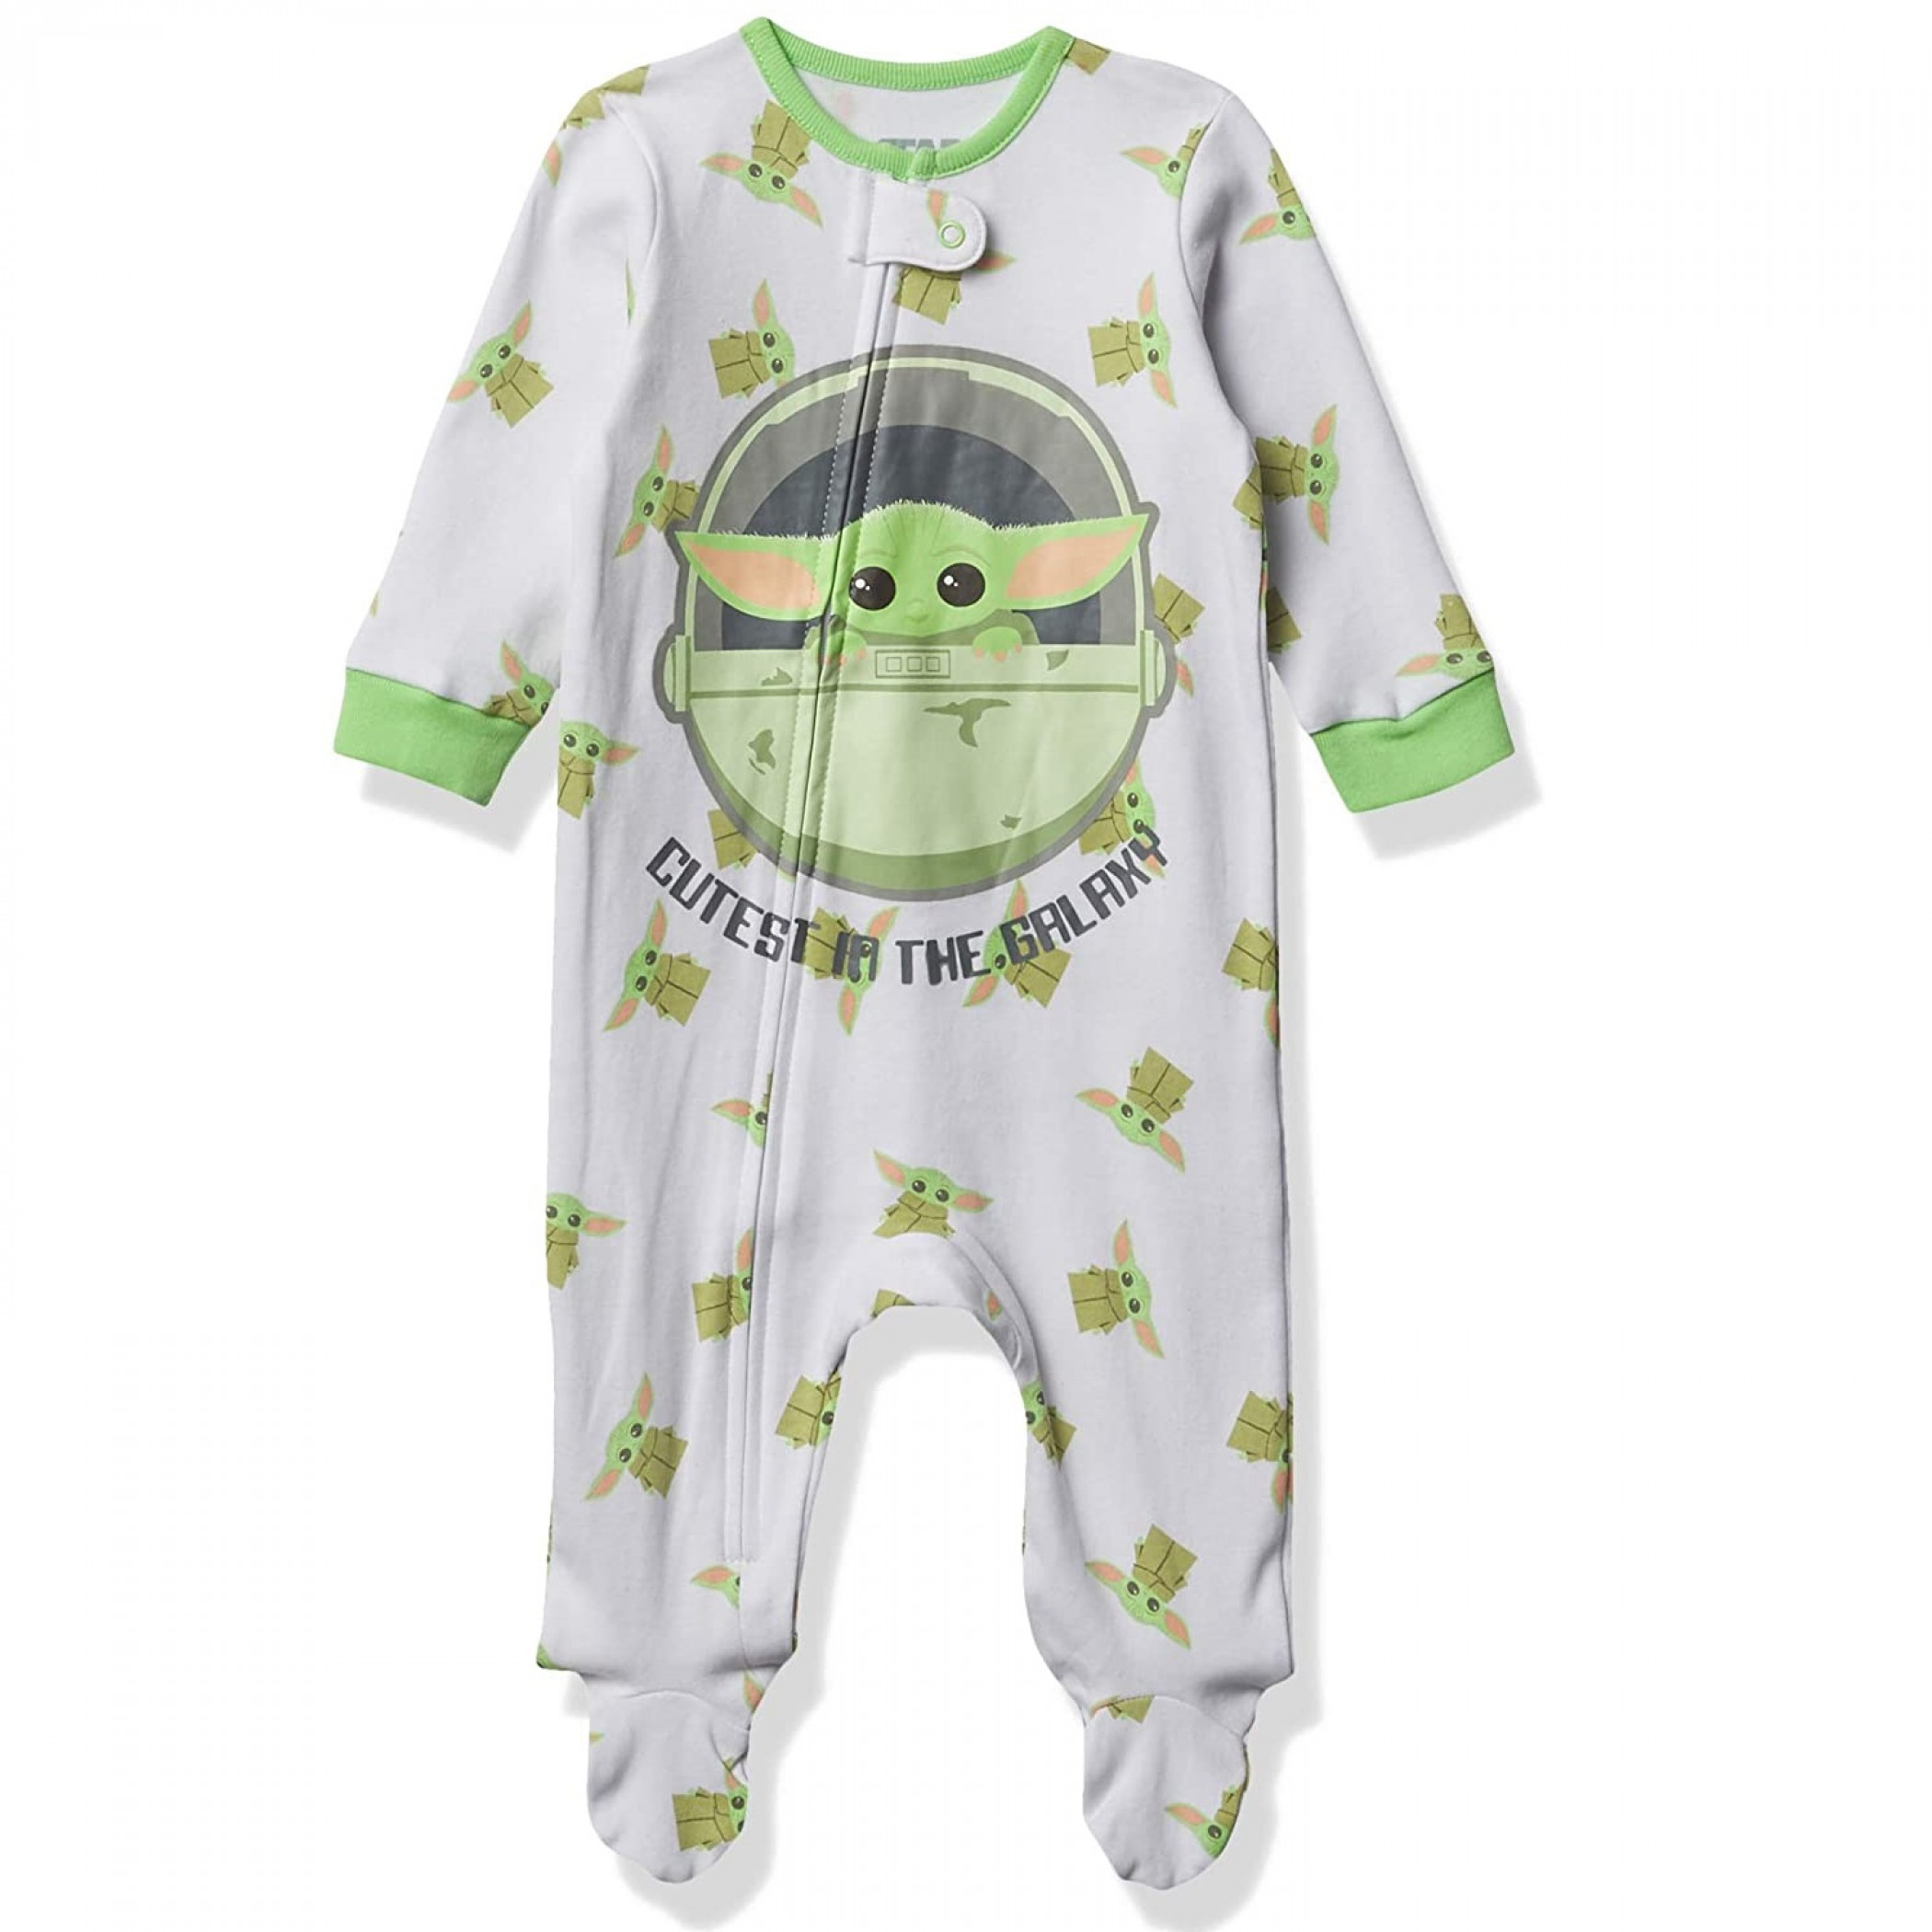 Star Wars The Child Cutest in the Galaxy Infant Sleeper